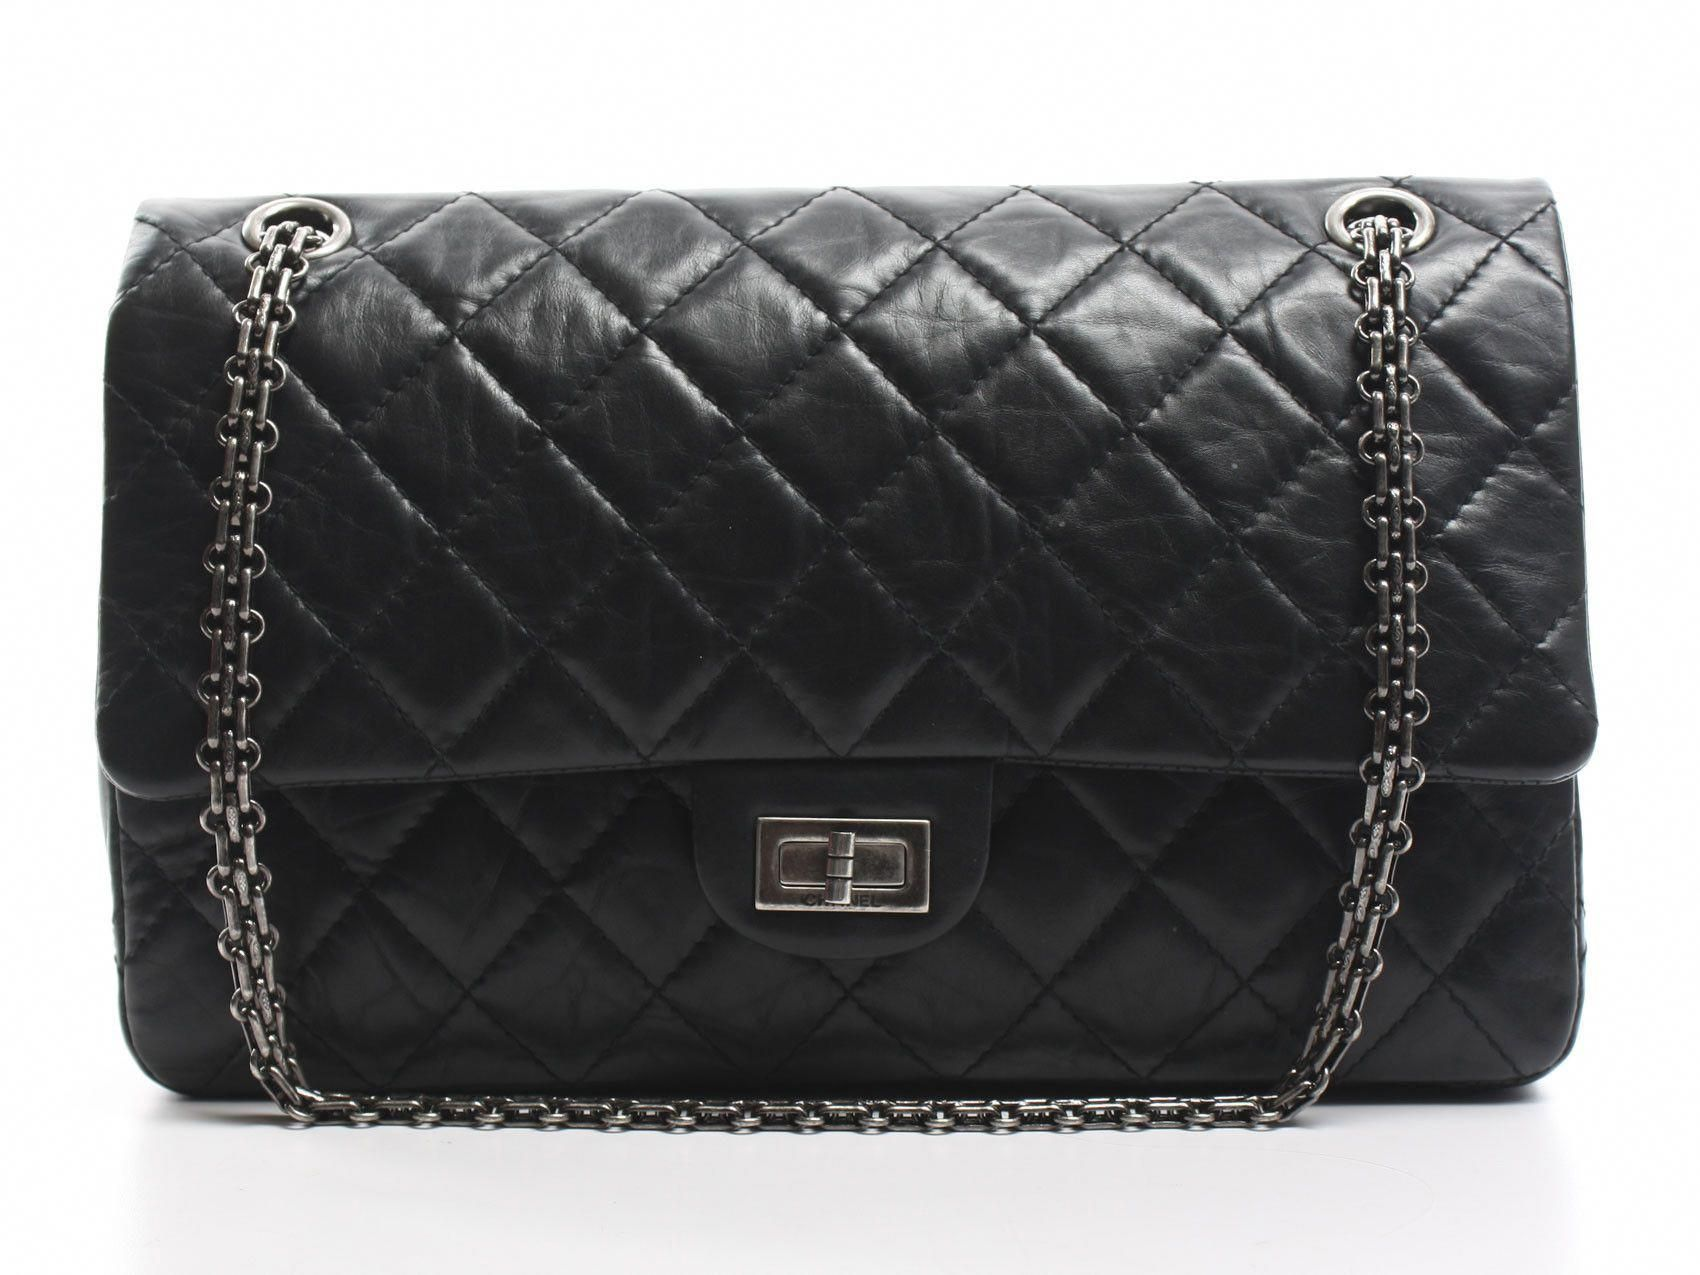 634b51c108d5 Timeless Luxuries - CHANEL Black Aged Calf 2.55 Reissue 225 Flap Bag ...